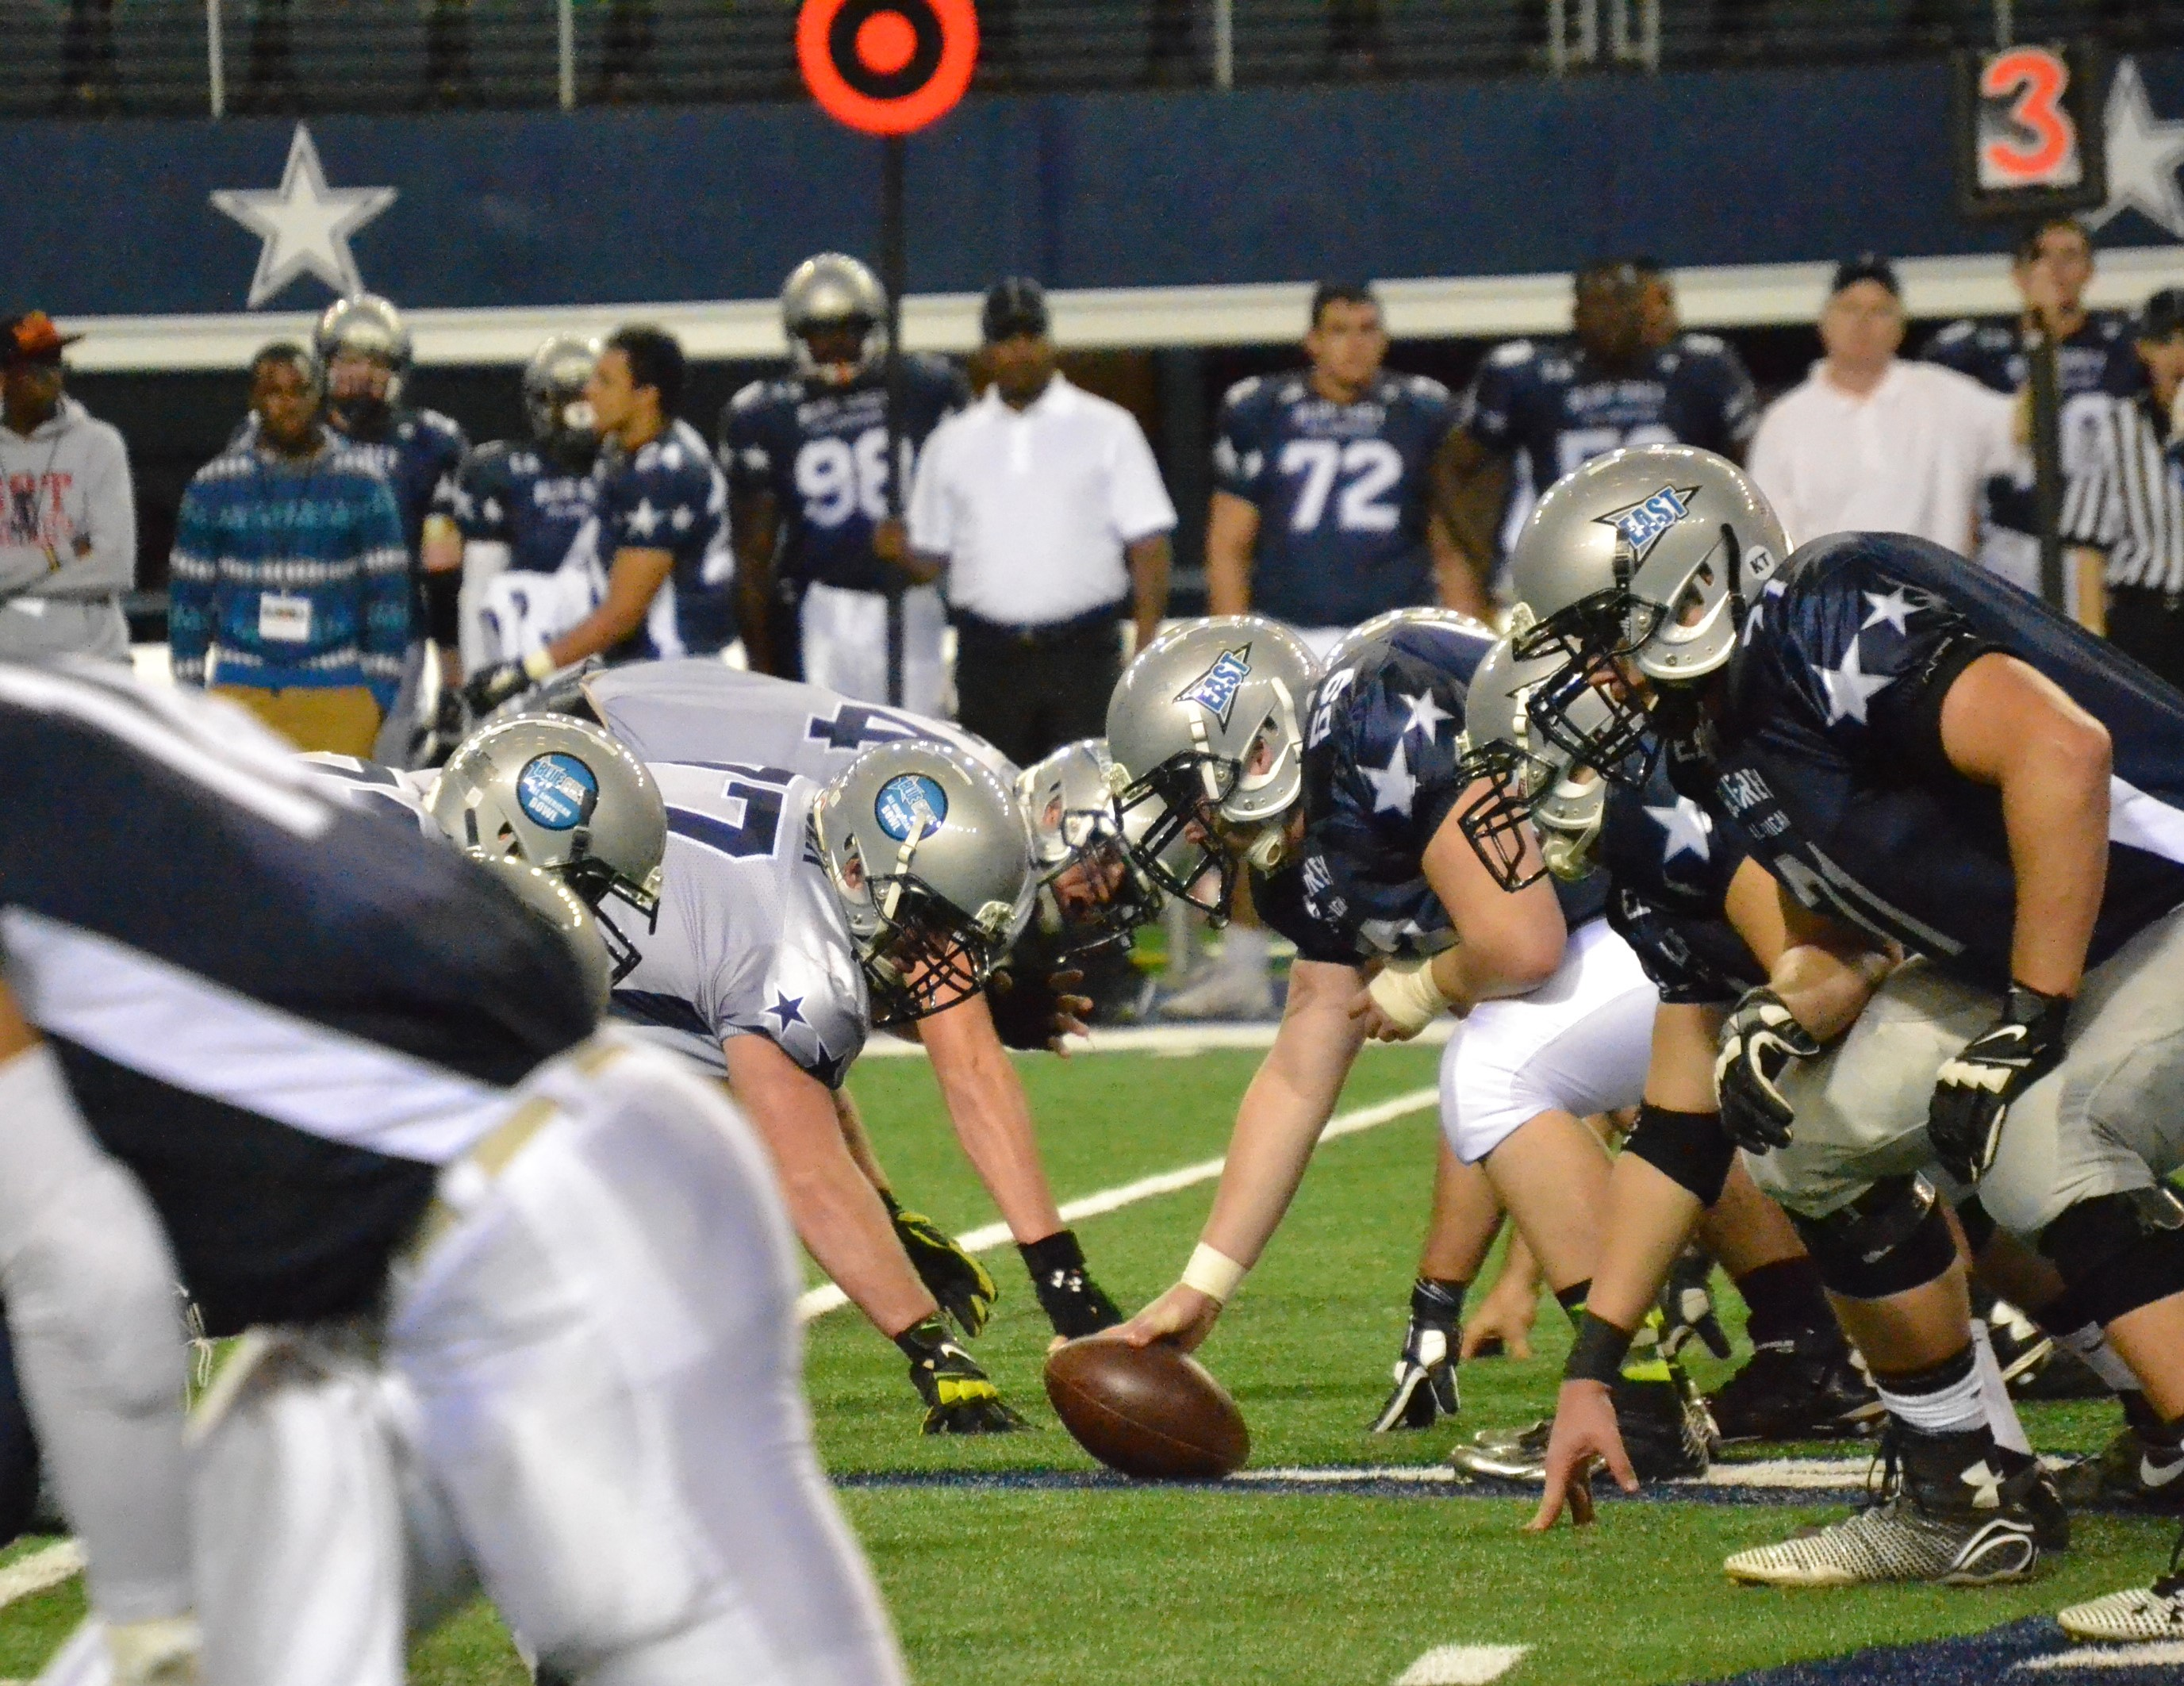 East-West All-Star Games - Games, Rosters, Coaching ...